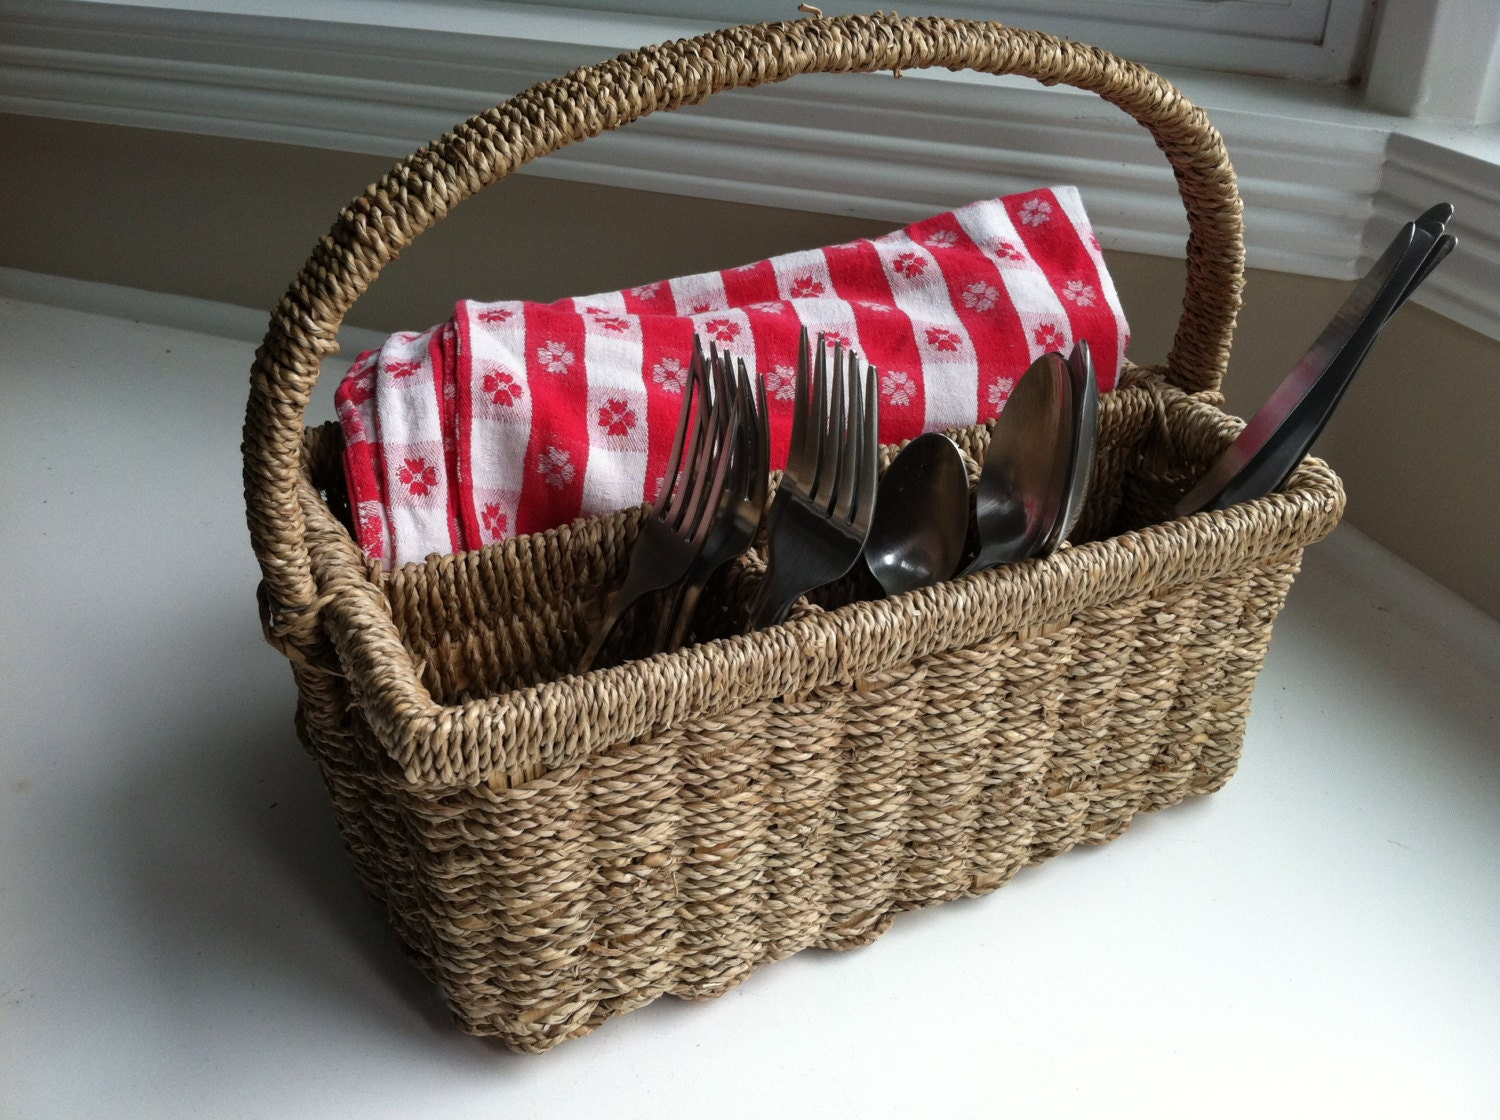 Wicker Picnic Silverware Basket Caddy